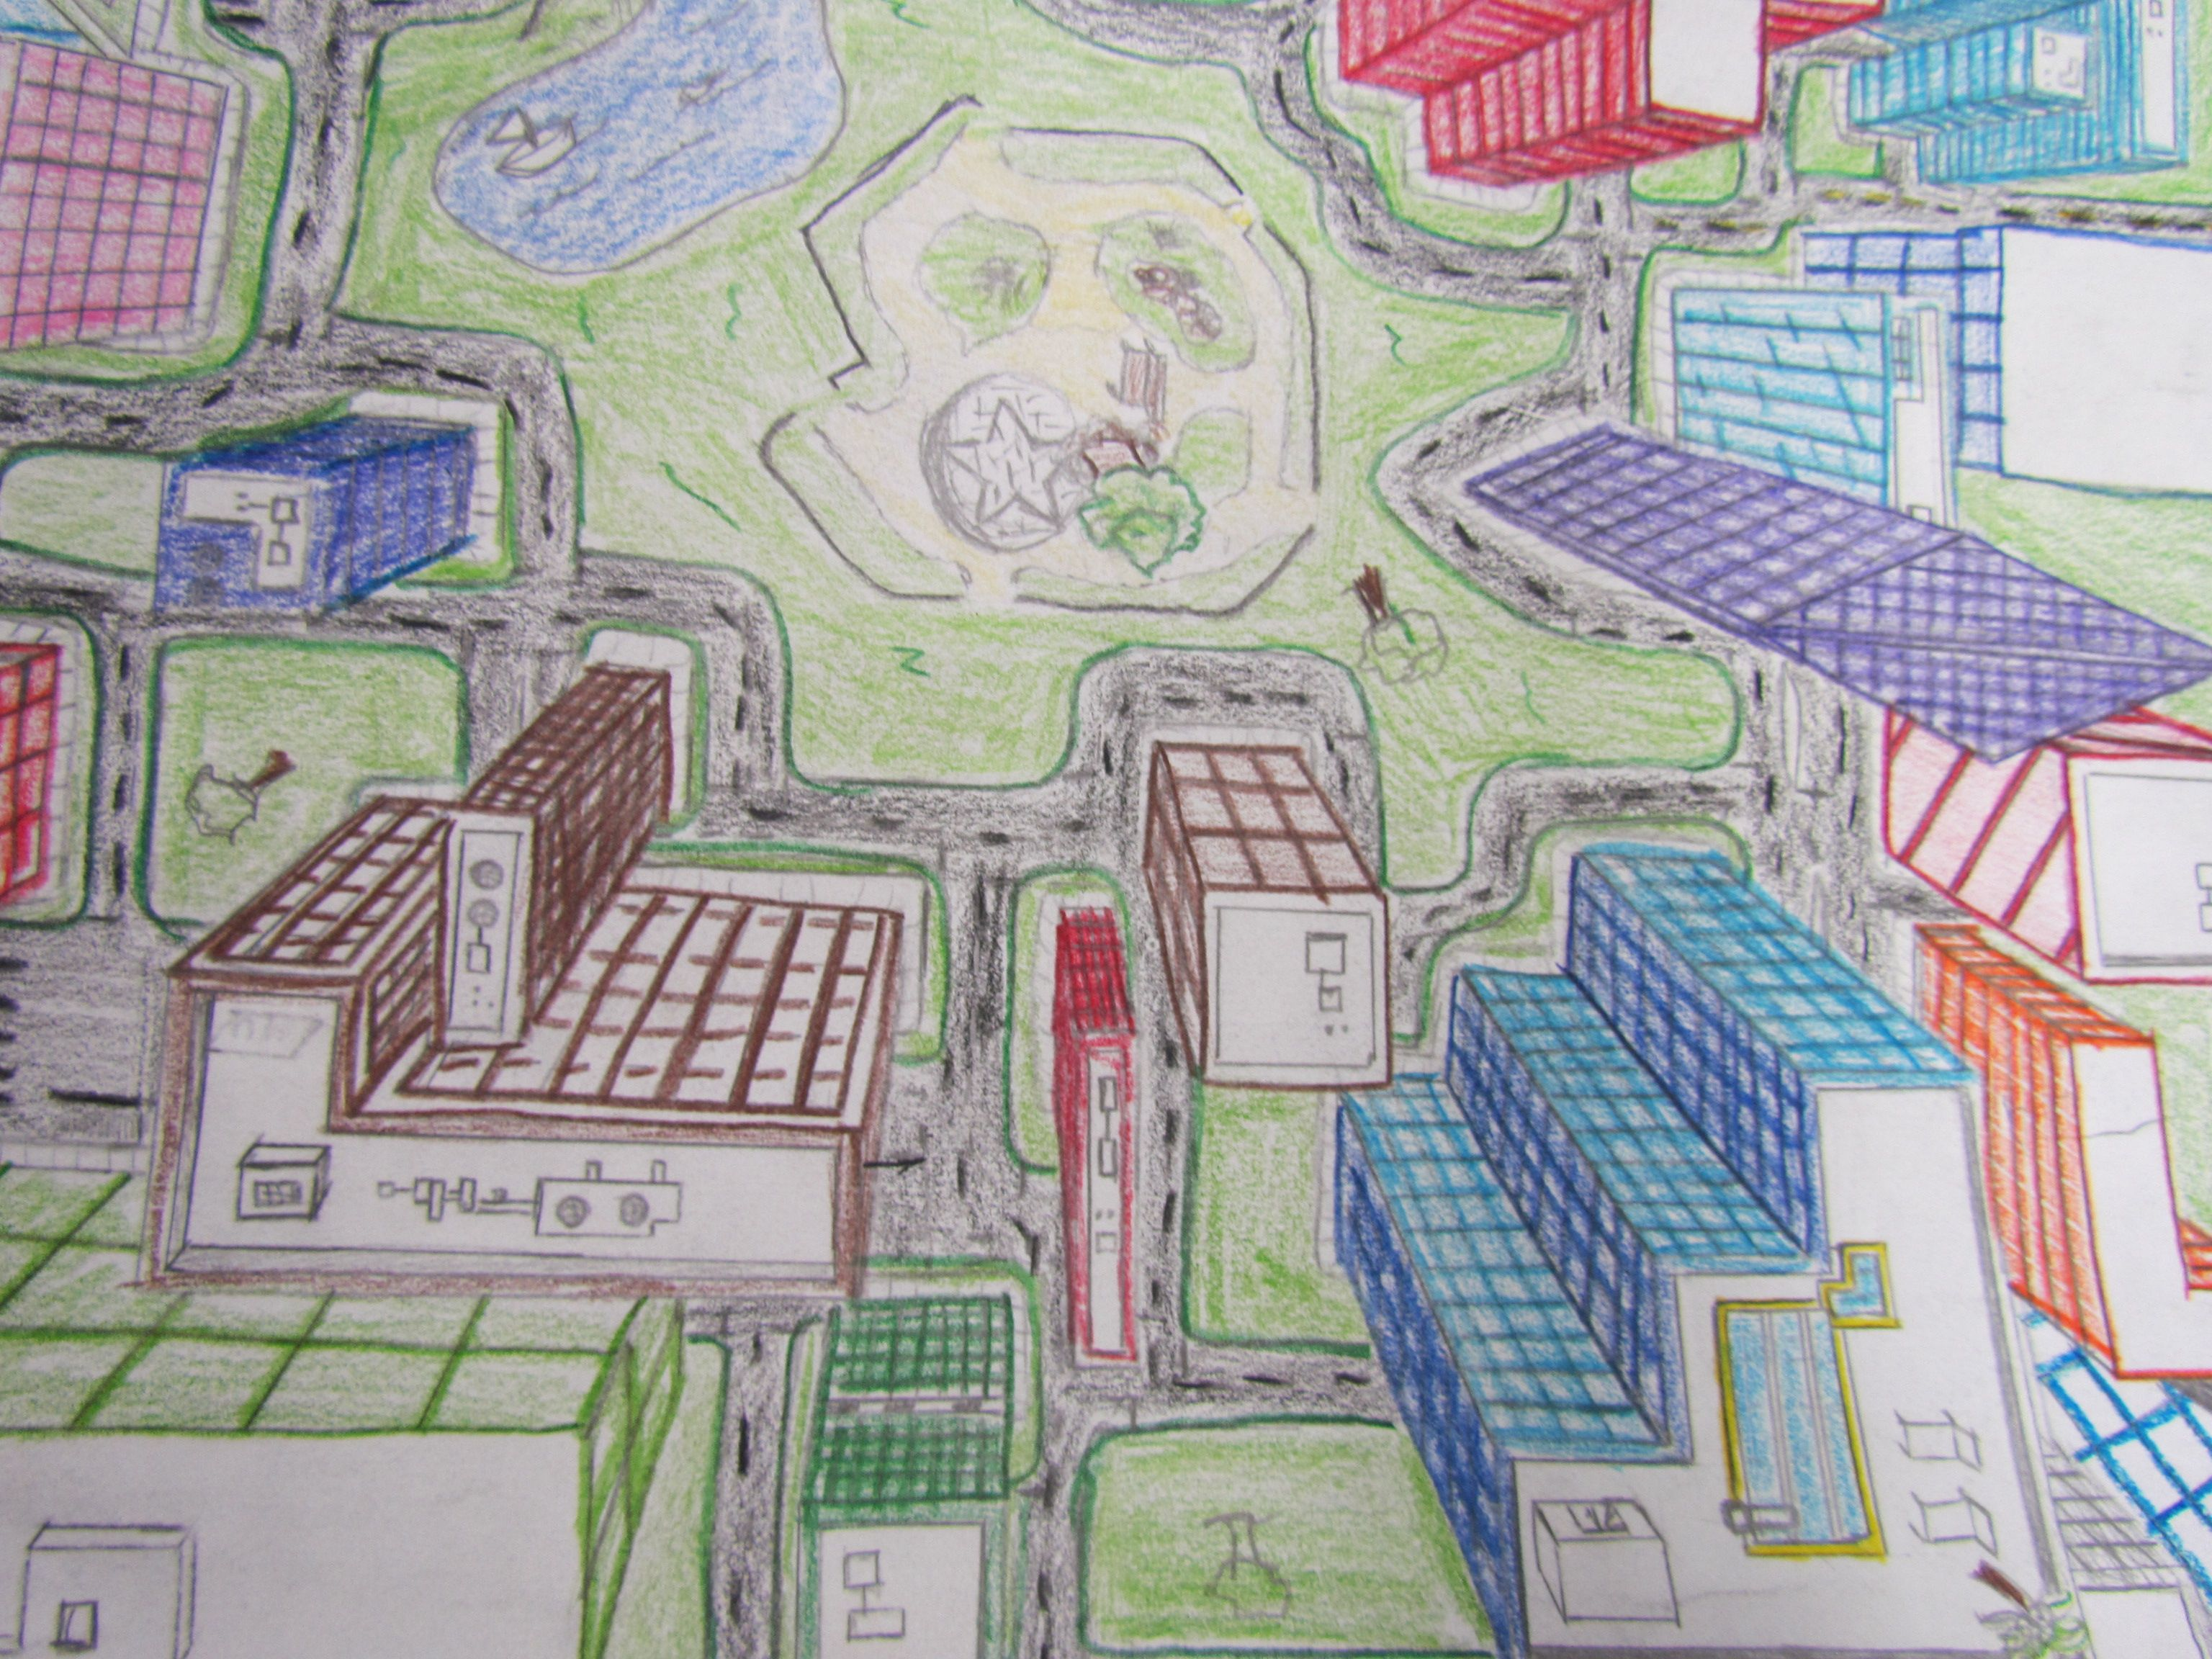 1 Point Perspective Drawing A City From Above